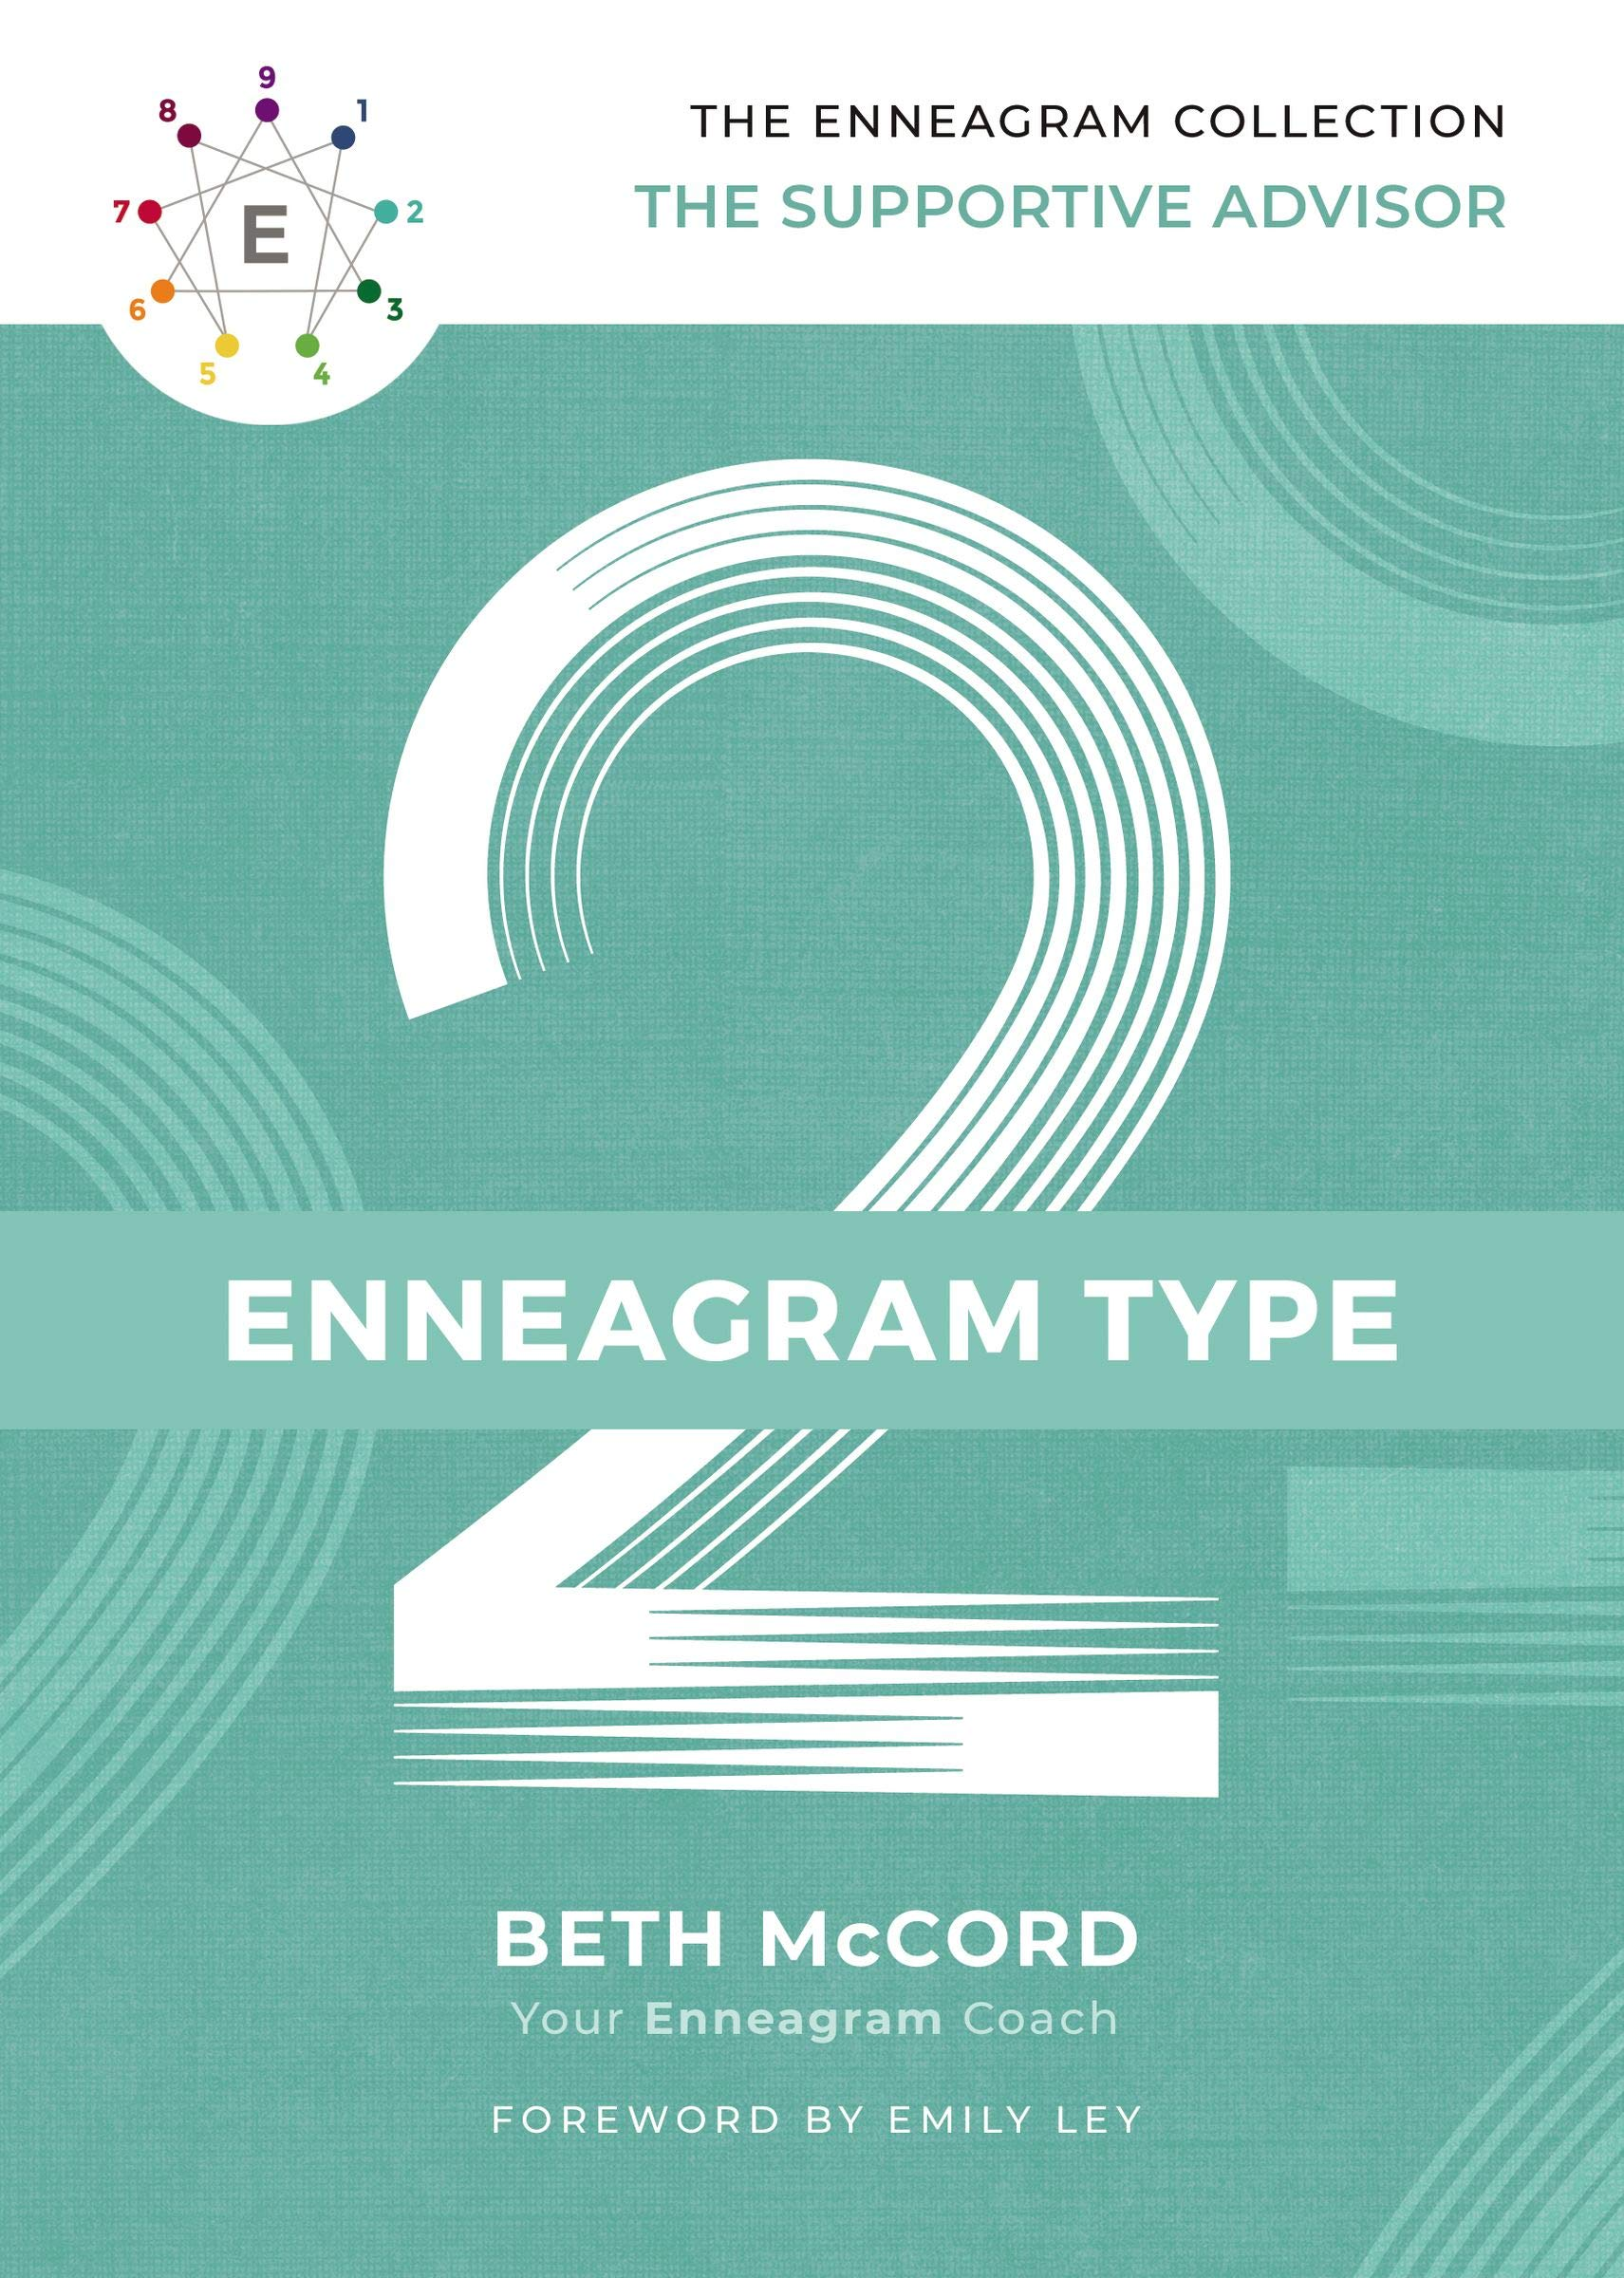 The Enneagram Type 2: The Supportive Advisor (The Enneagram Collection)